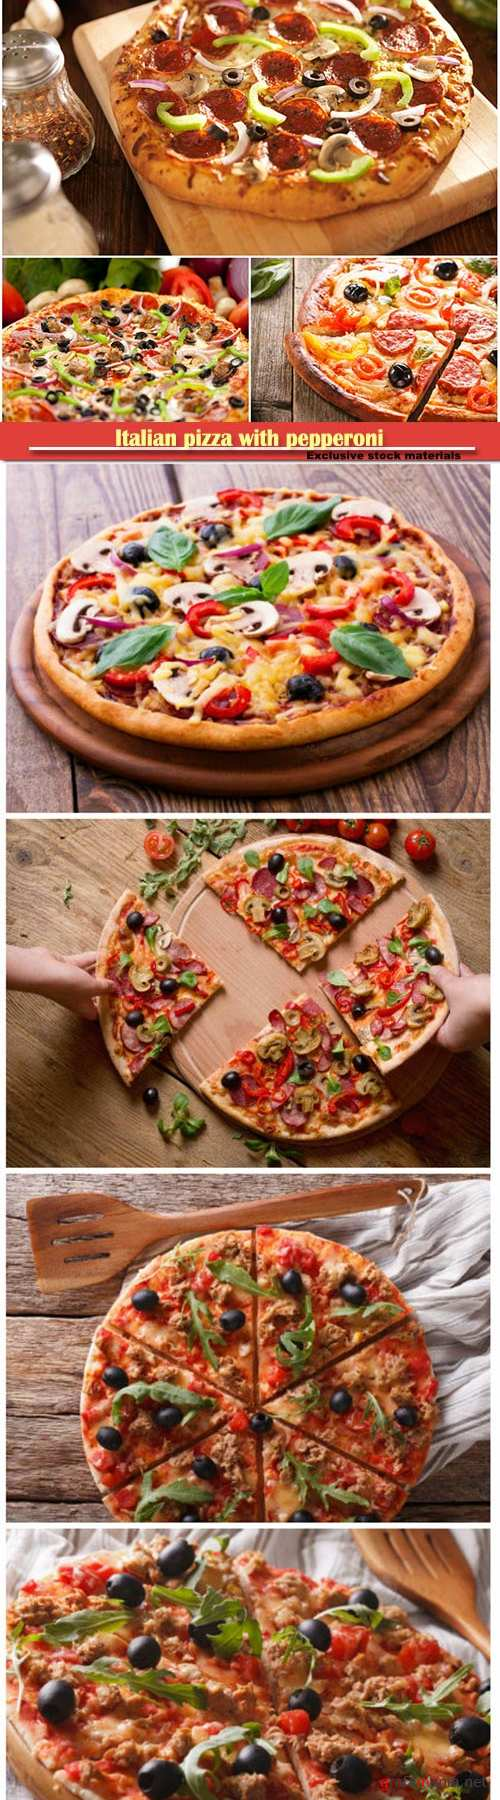 Italian pizza with pepperoni and toppings, pizza with seafood